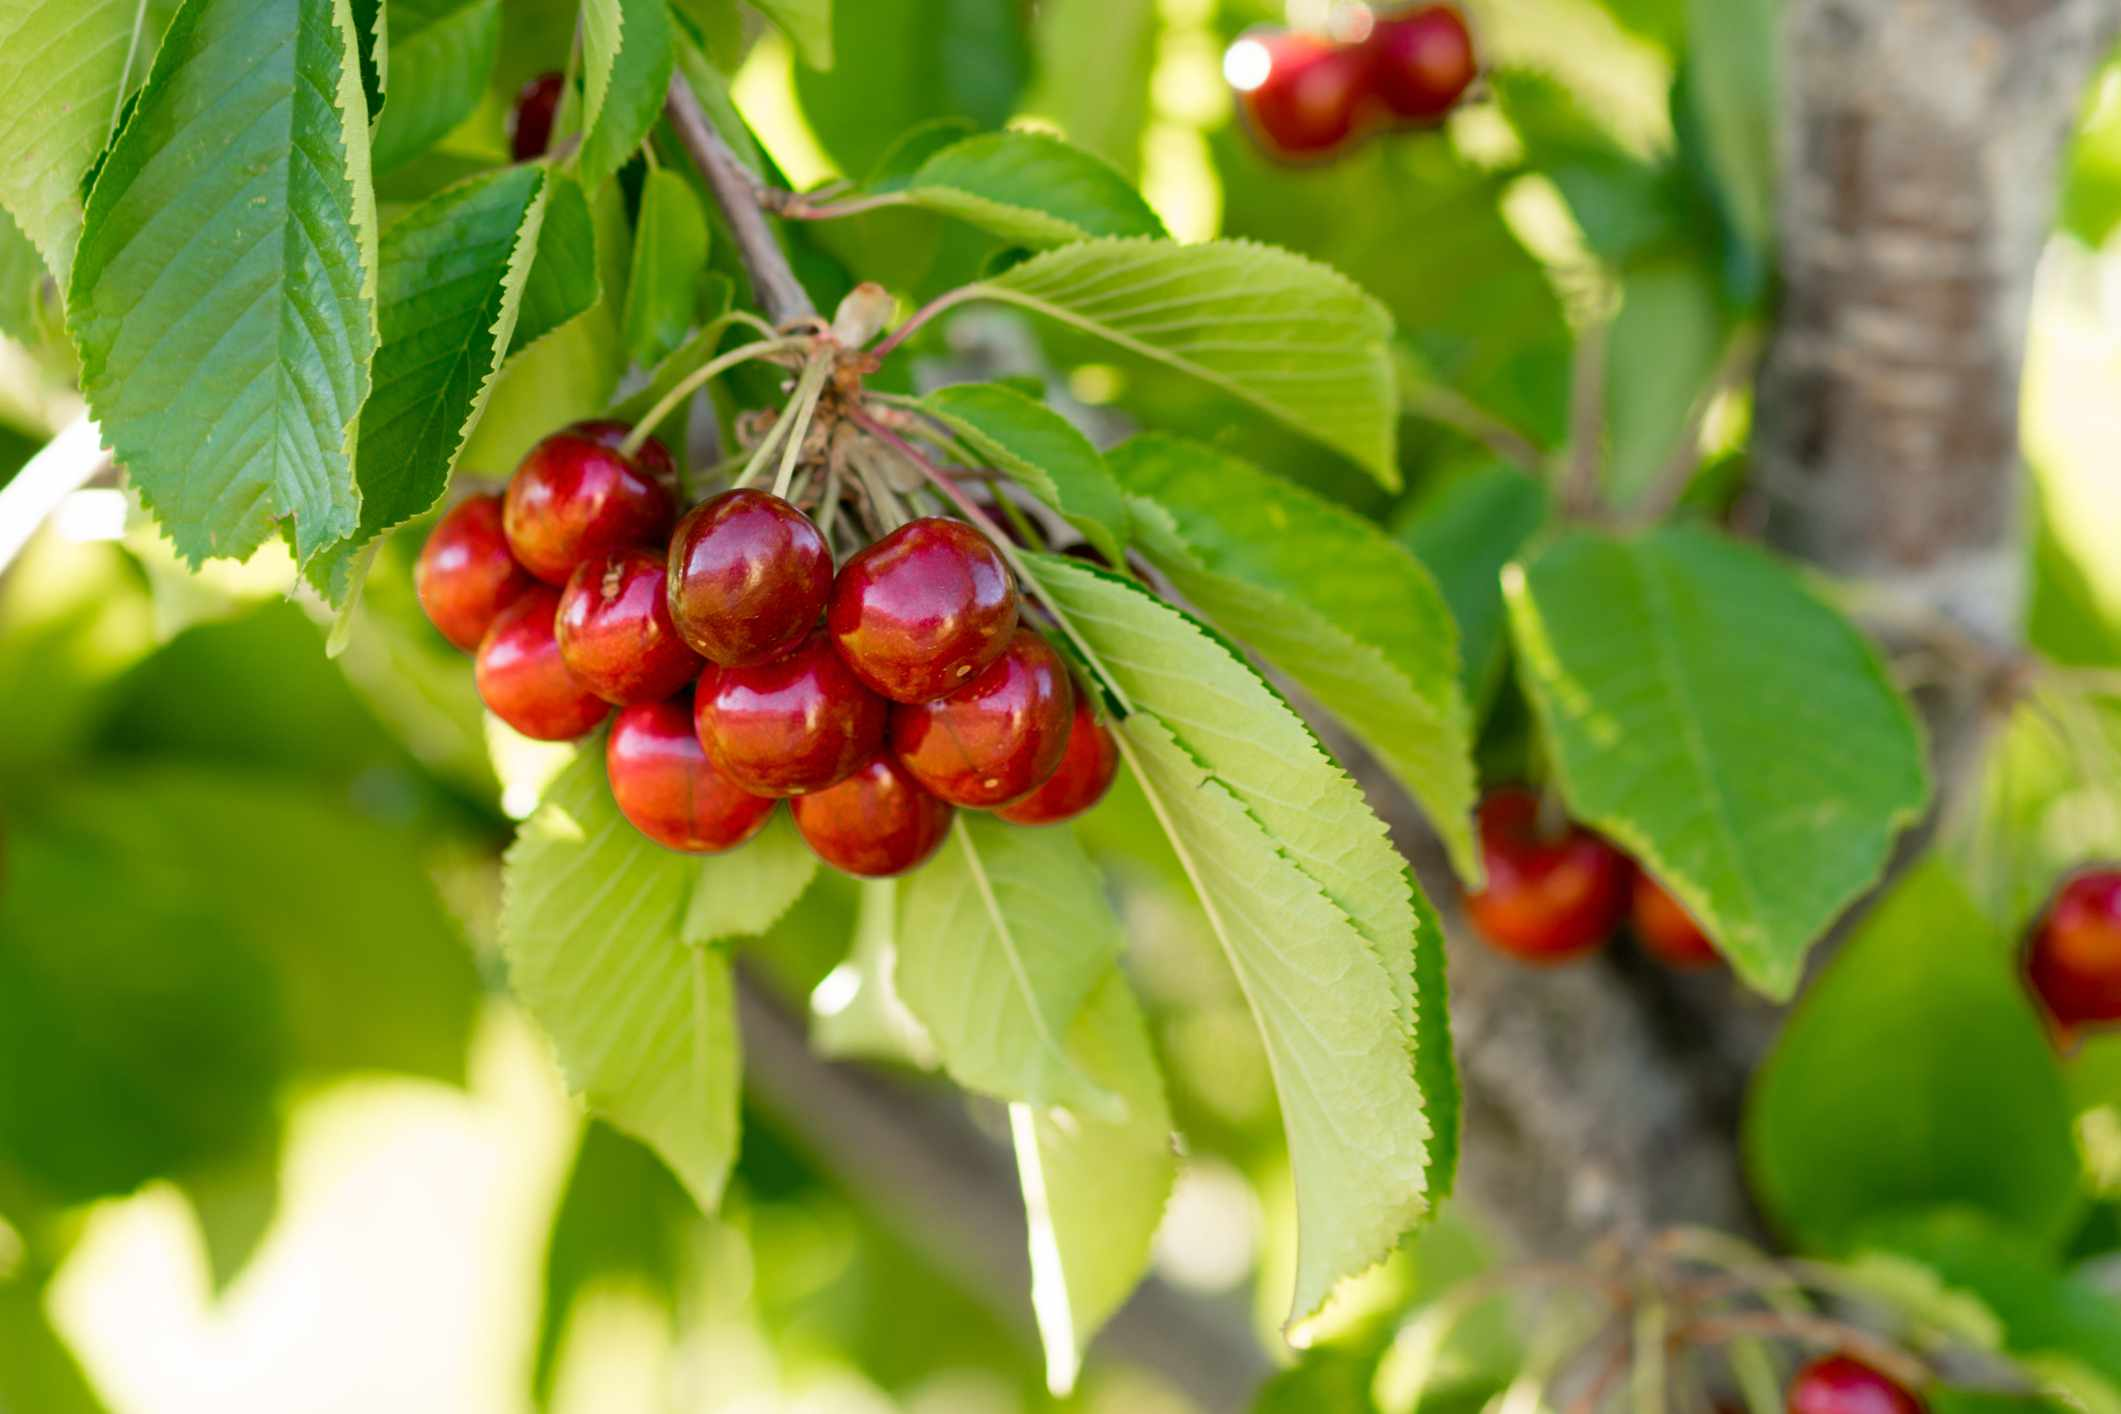 Cherries hanging on a tree surrounded by green leaves.